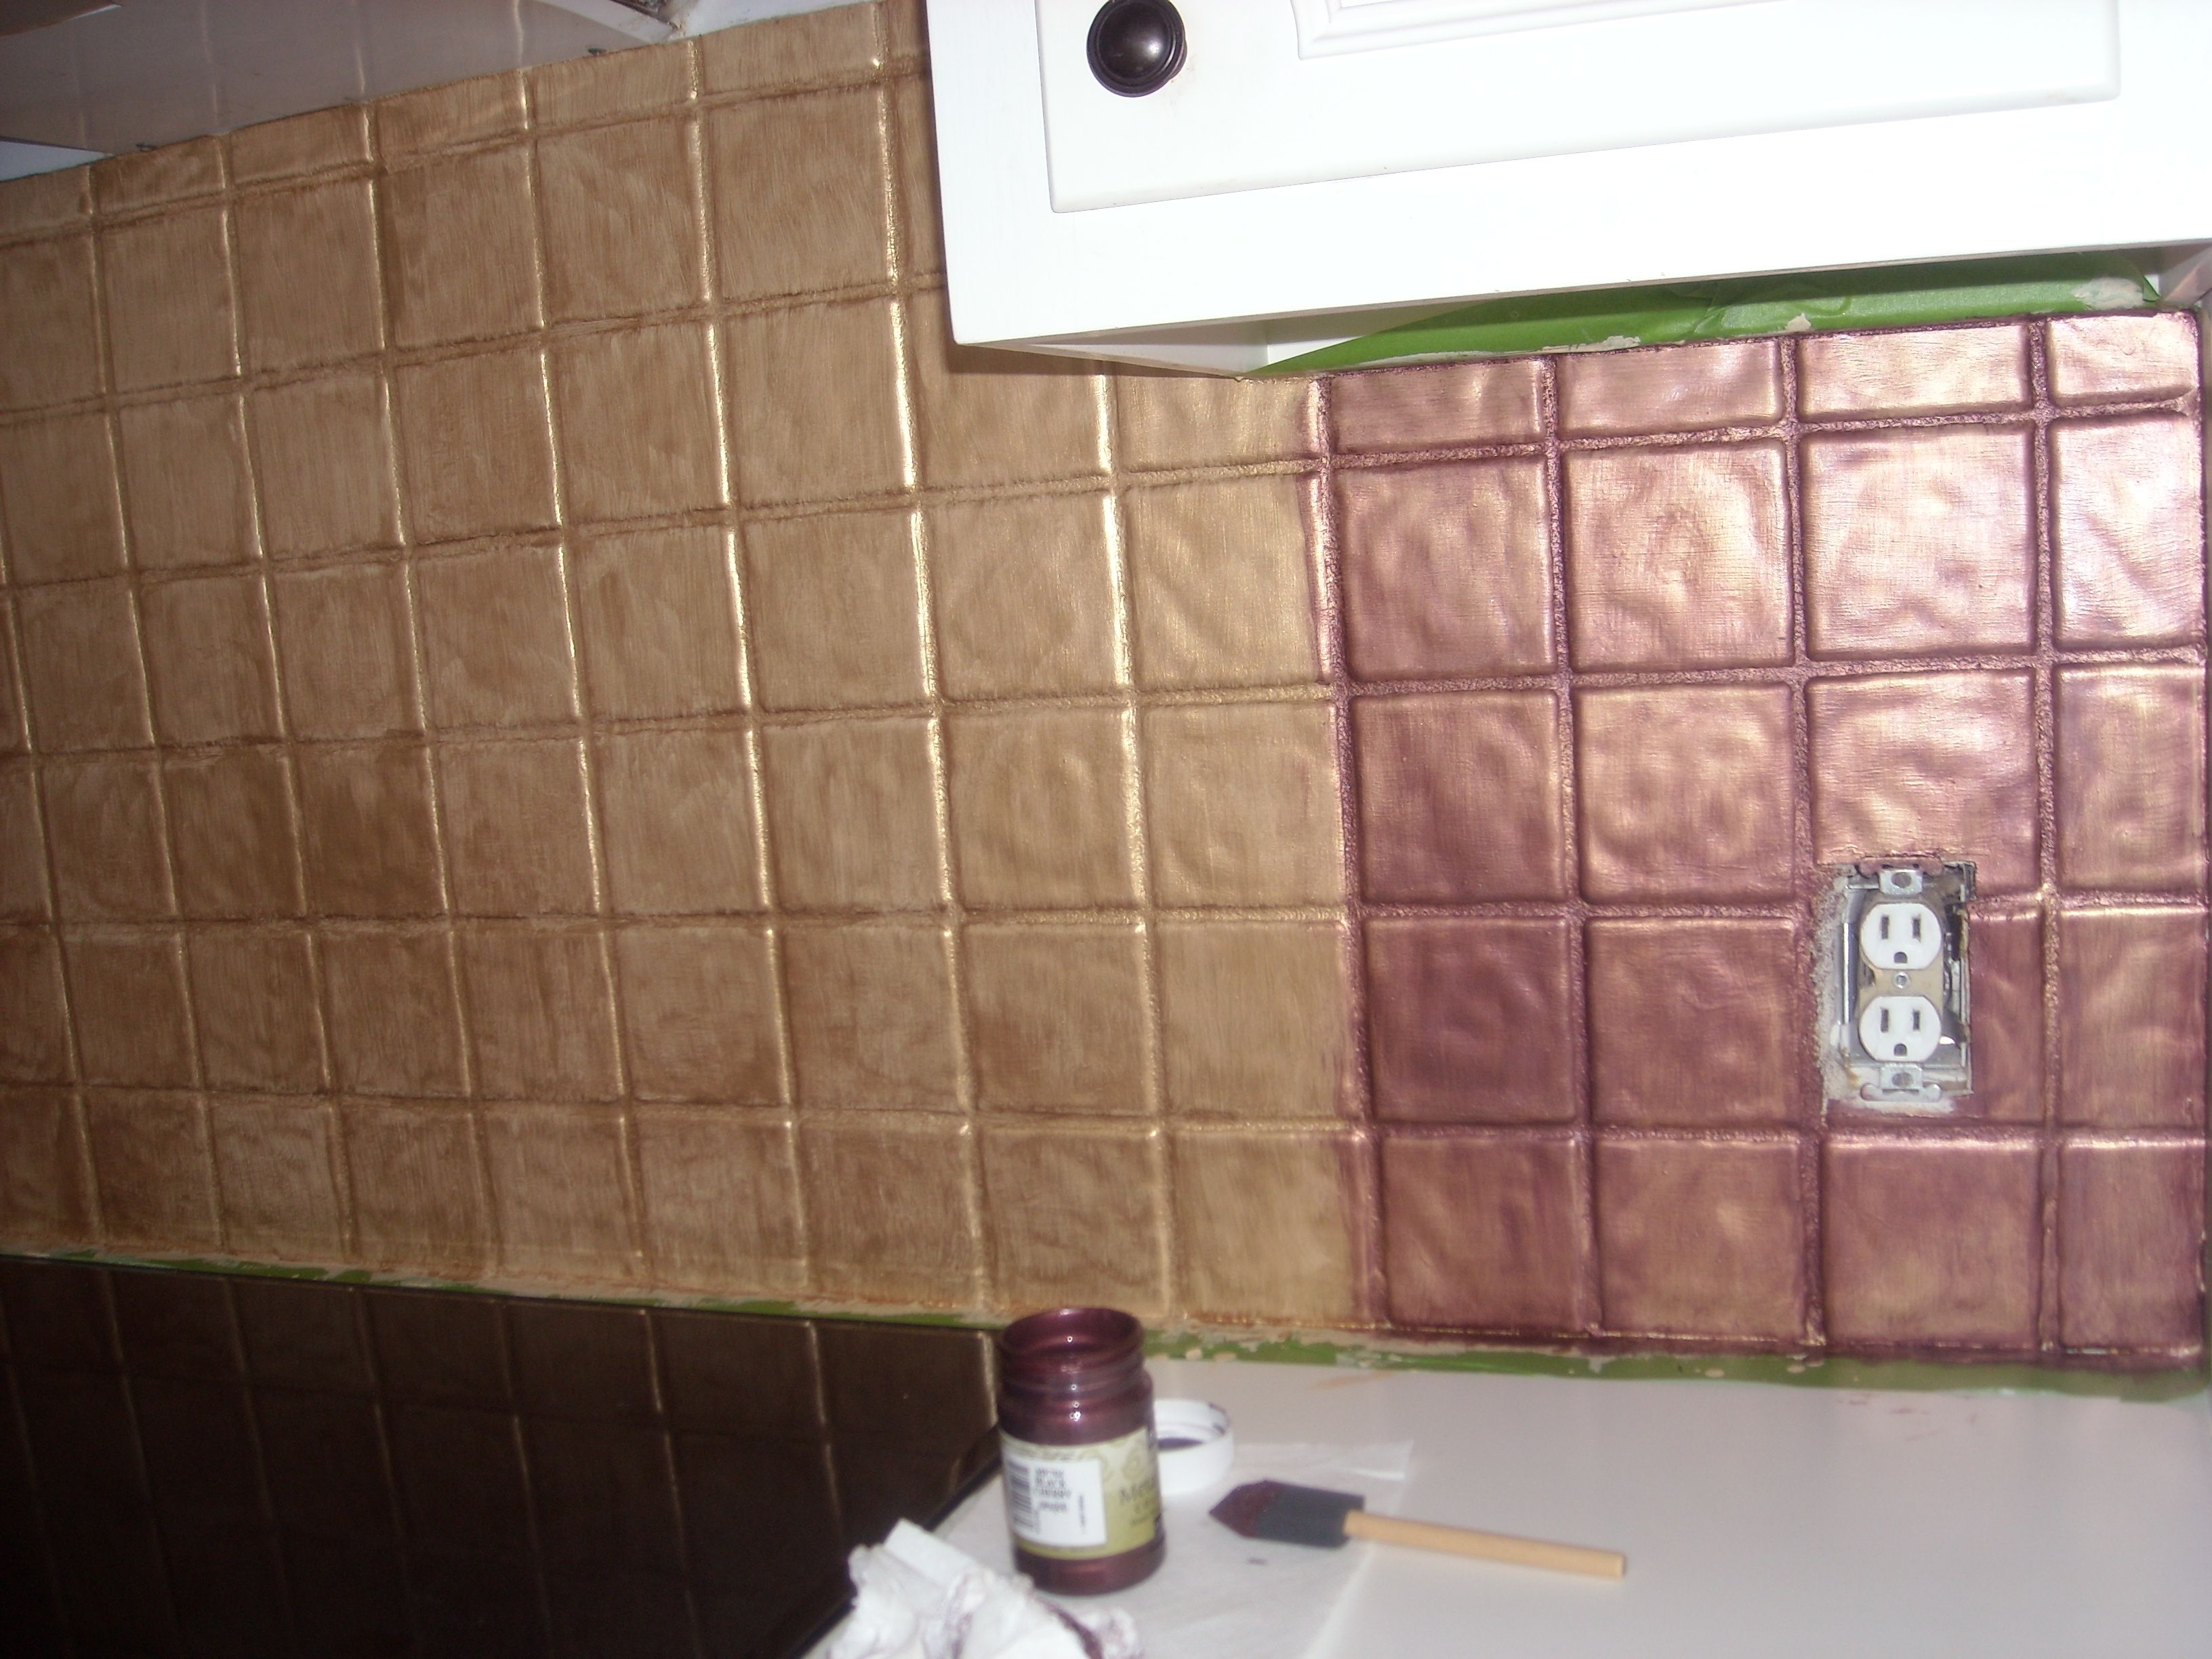 Uncategorized Paint Kitchen Tiles Backsplash yes you can paint over tile i turned my backsplash kitchen kitchen